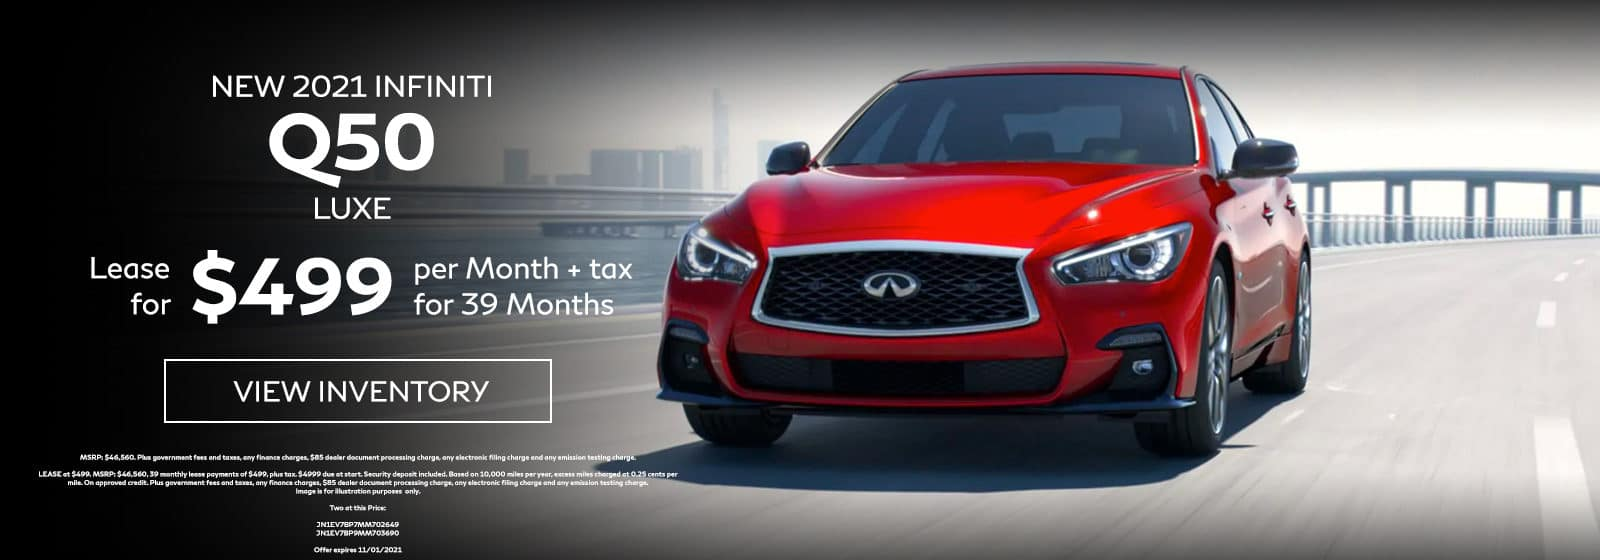 New 2021 INFINITI Q50 LUXE. Lease for $499 Per Month + Tax for 39 Months